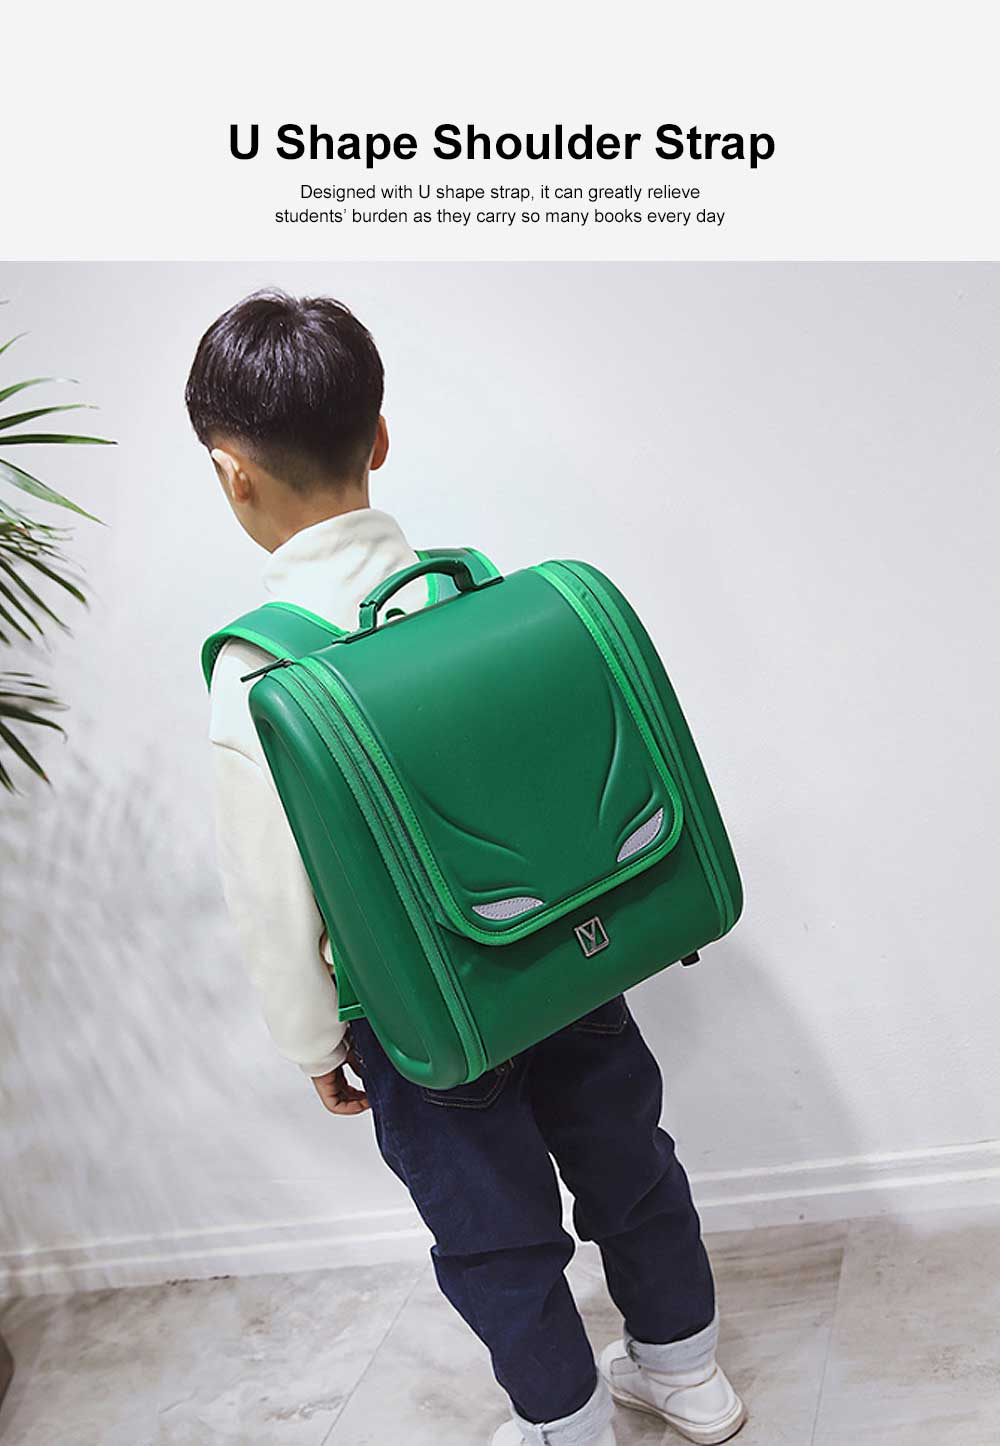 Student Schoolbag with High Capacity Waterproof Breathable Ergonomic Design for 6 to 9 Year Kids School Bag Built in Side Pocket for Boy Girl Gift 1